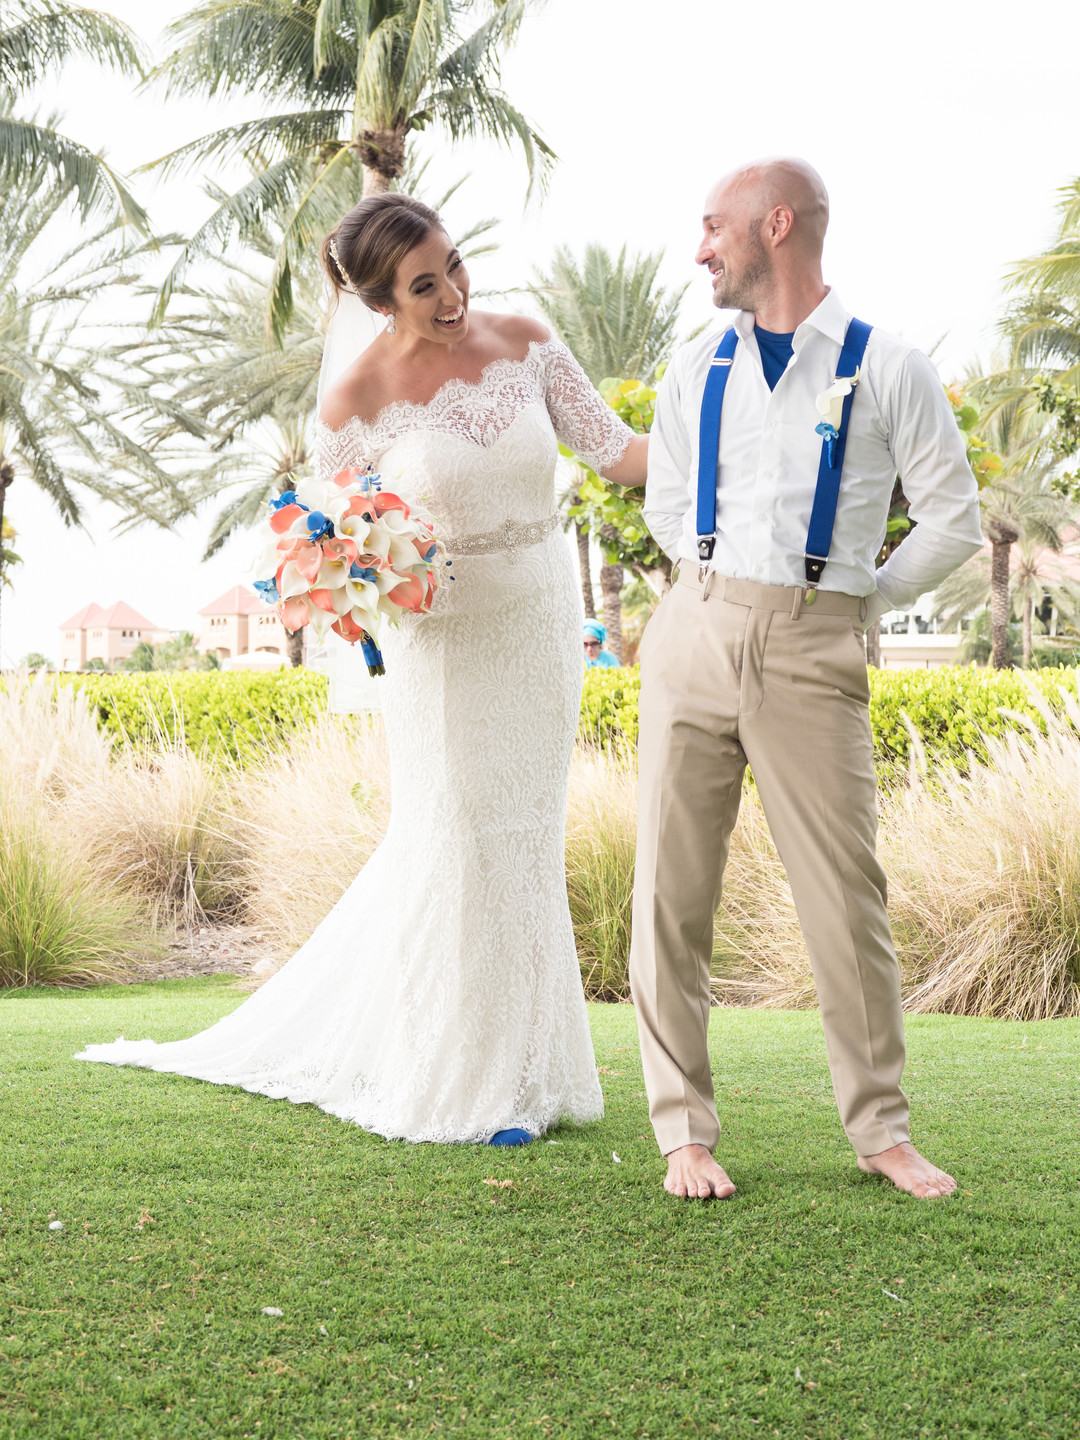 Alicia & Chris's Destination Wedding In Aruba, Photography by Ross Kyker Photography, for Destination Wedding Blog Adriana Weddings